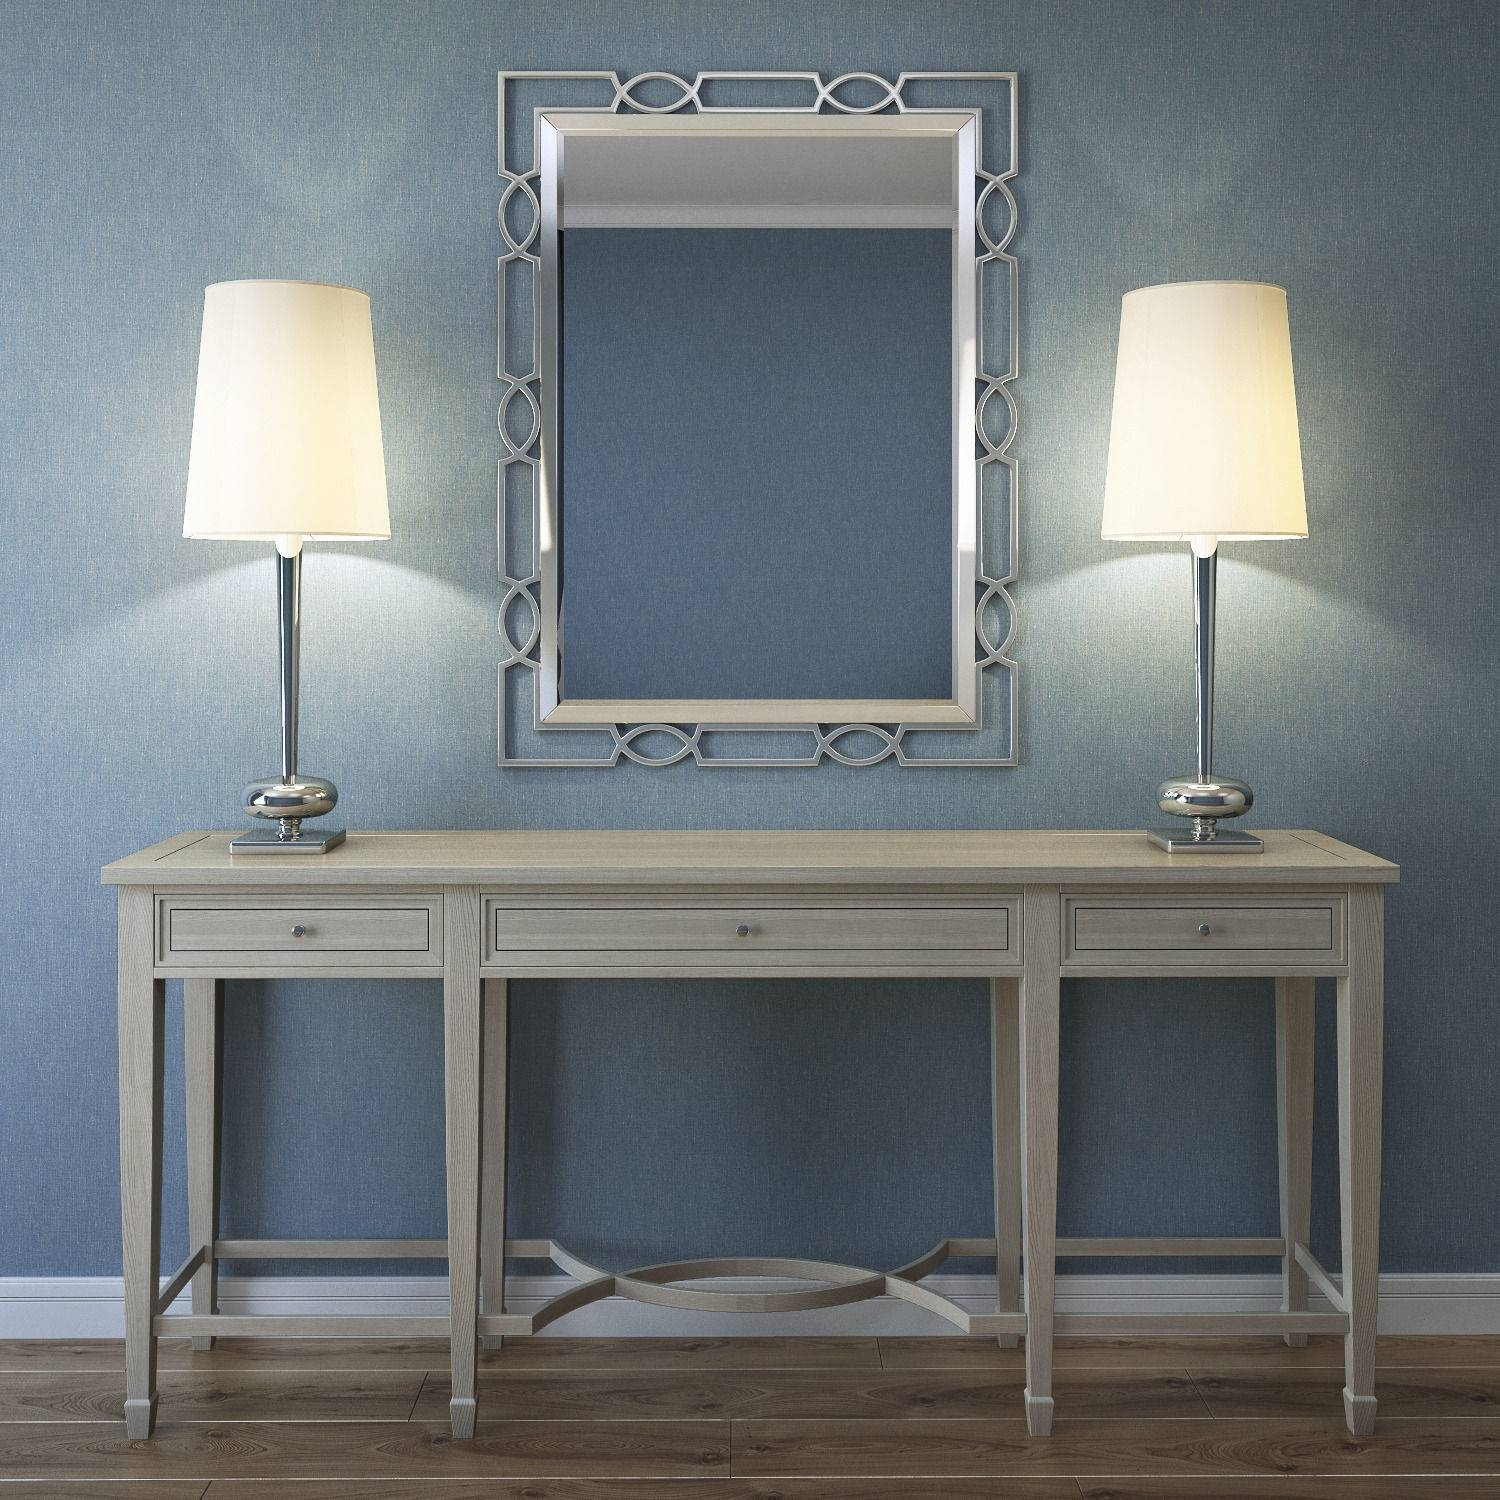 Bernhardt Criteria Console Table With The Mirror 3D Model Max Fbx regarding Bernhardt Console Tables (Image 1 of 15)